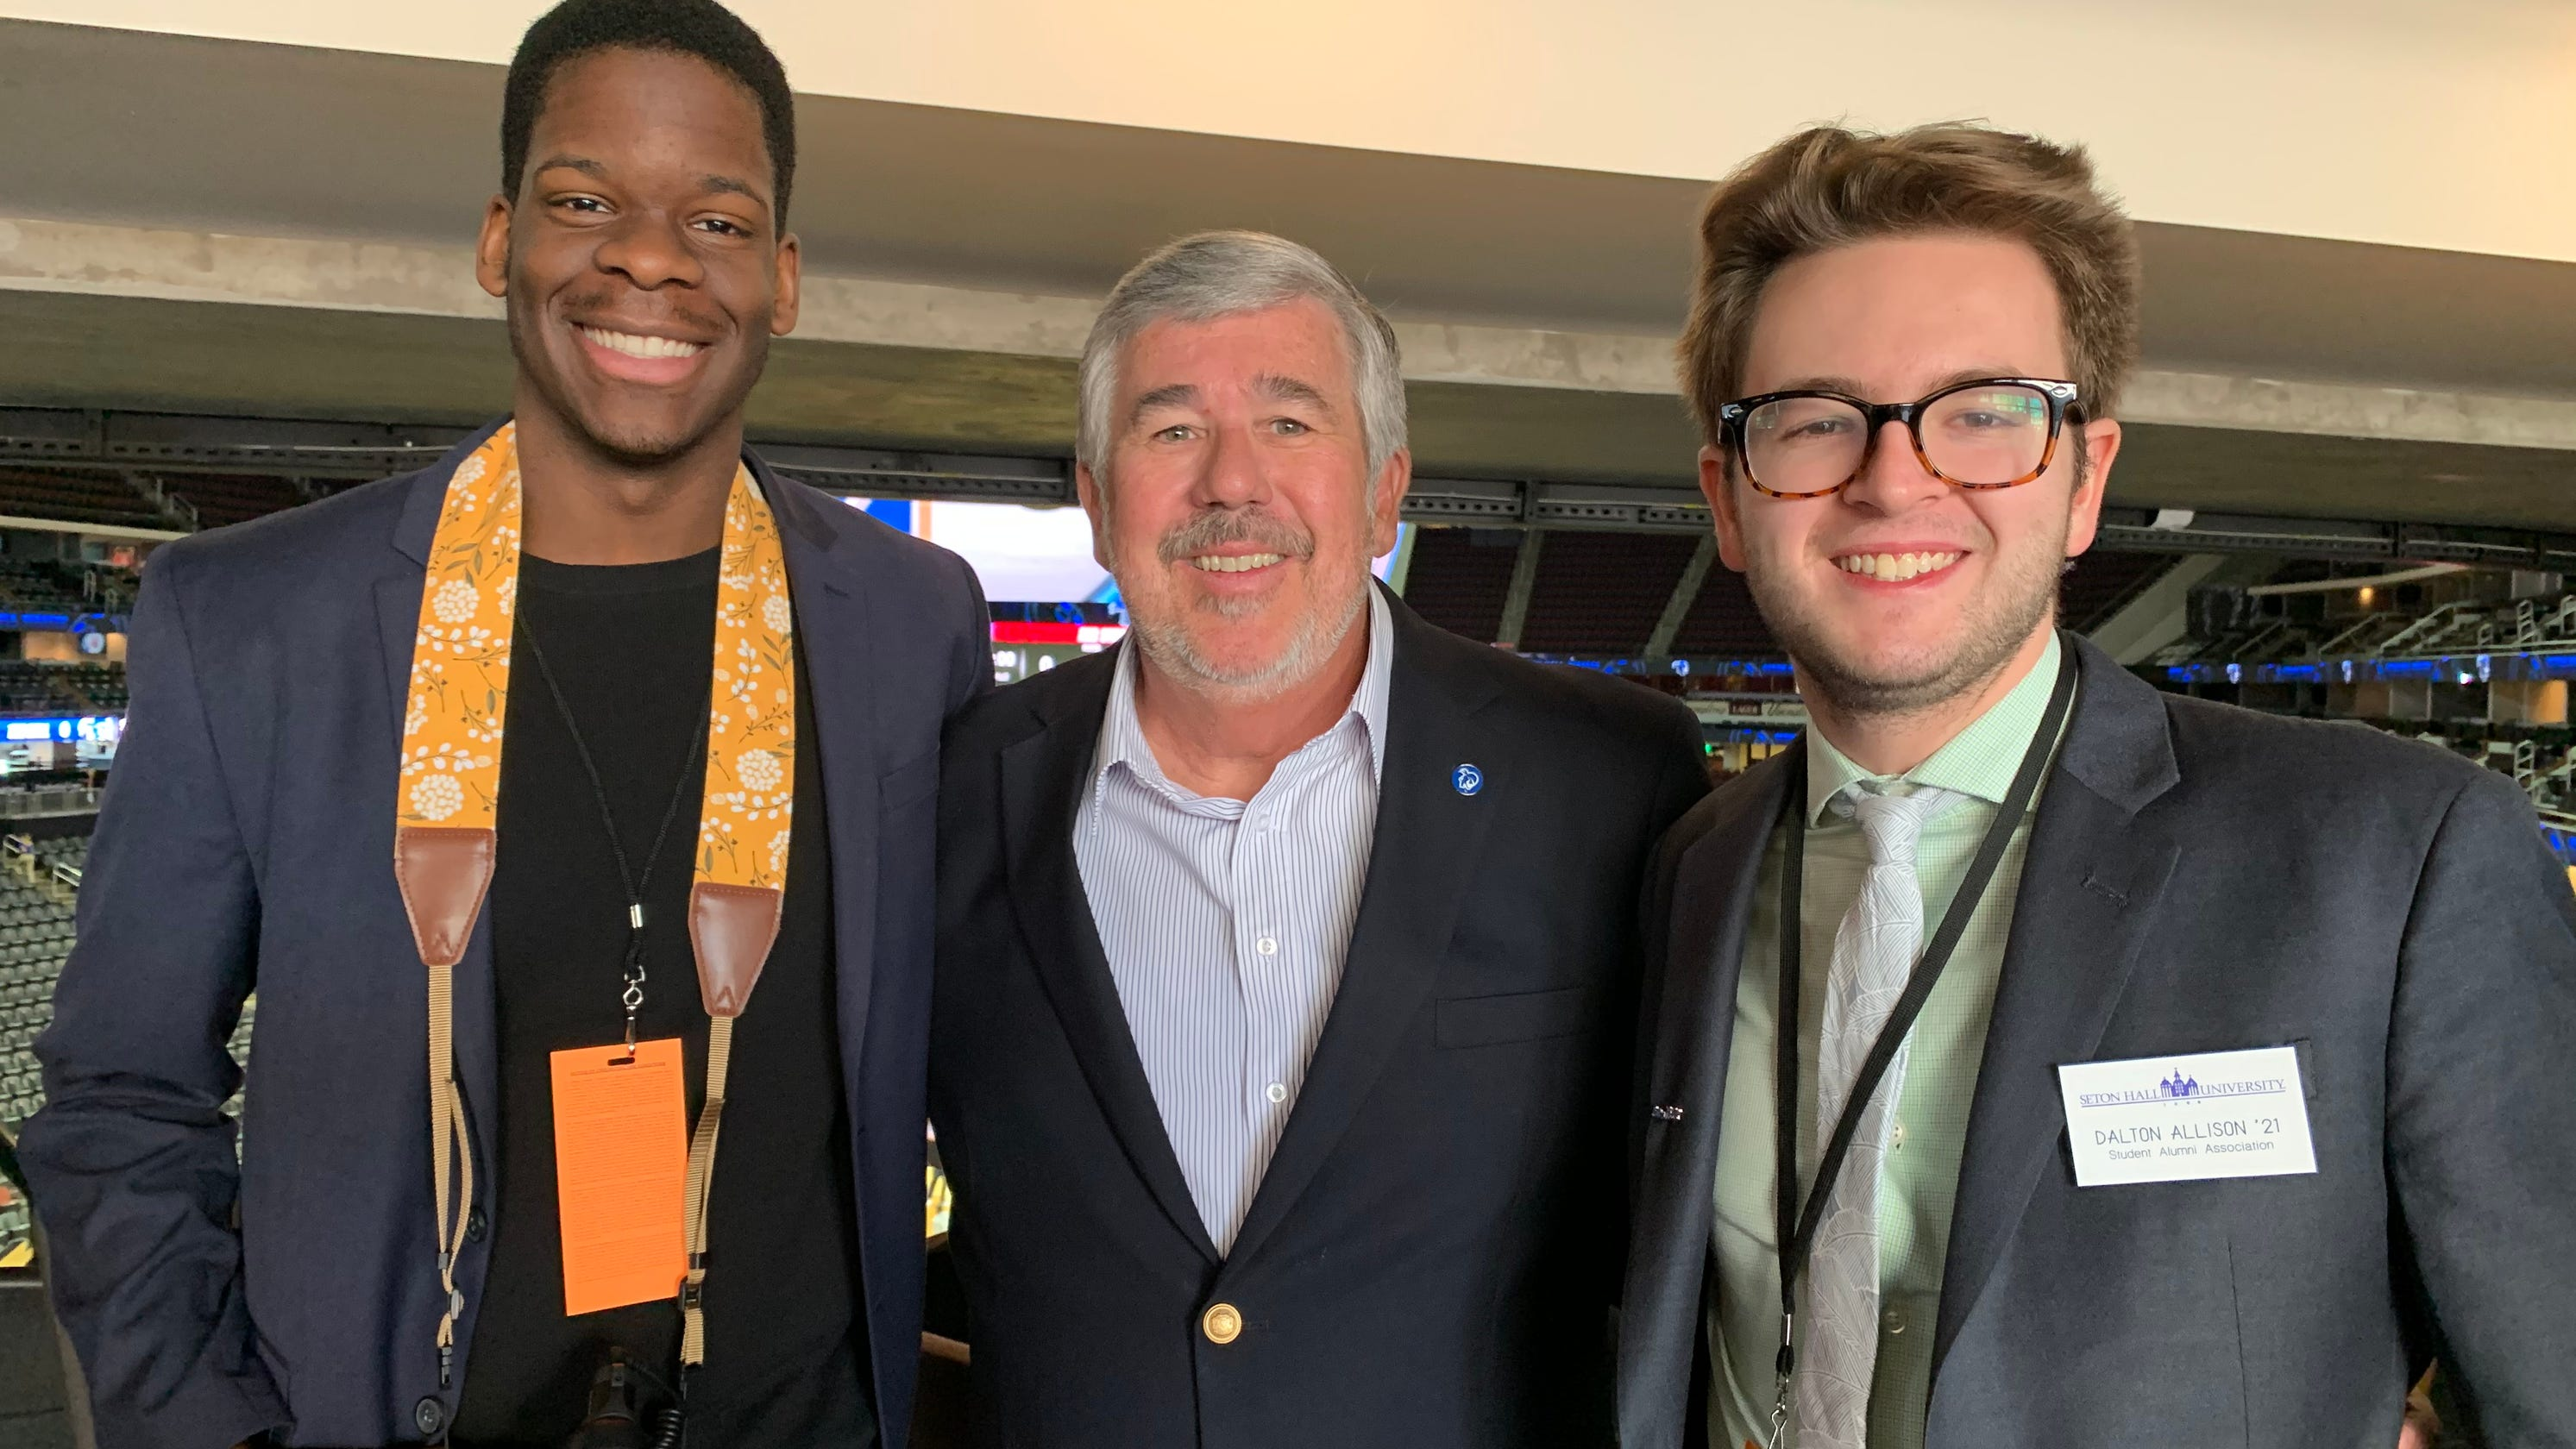 Seton Hall basketball: For St. John's game, Bob Ley returns to his broadcasting roots